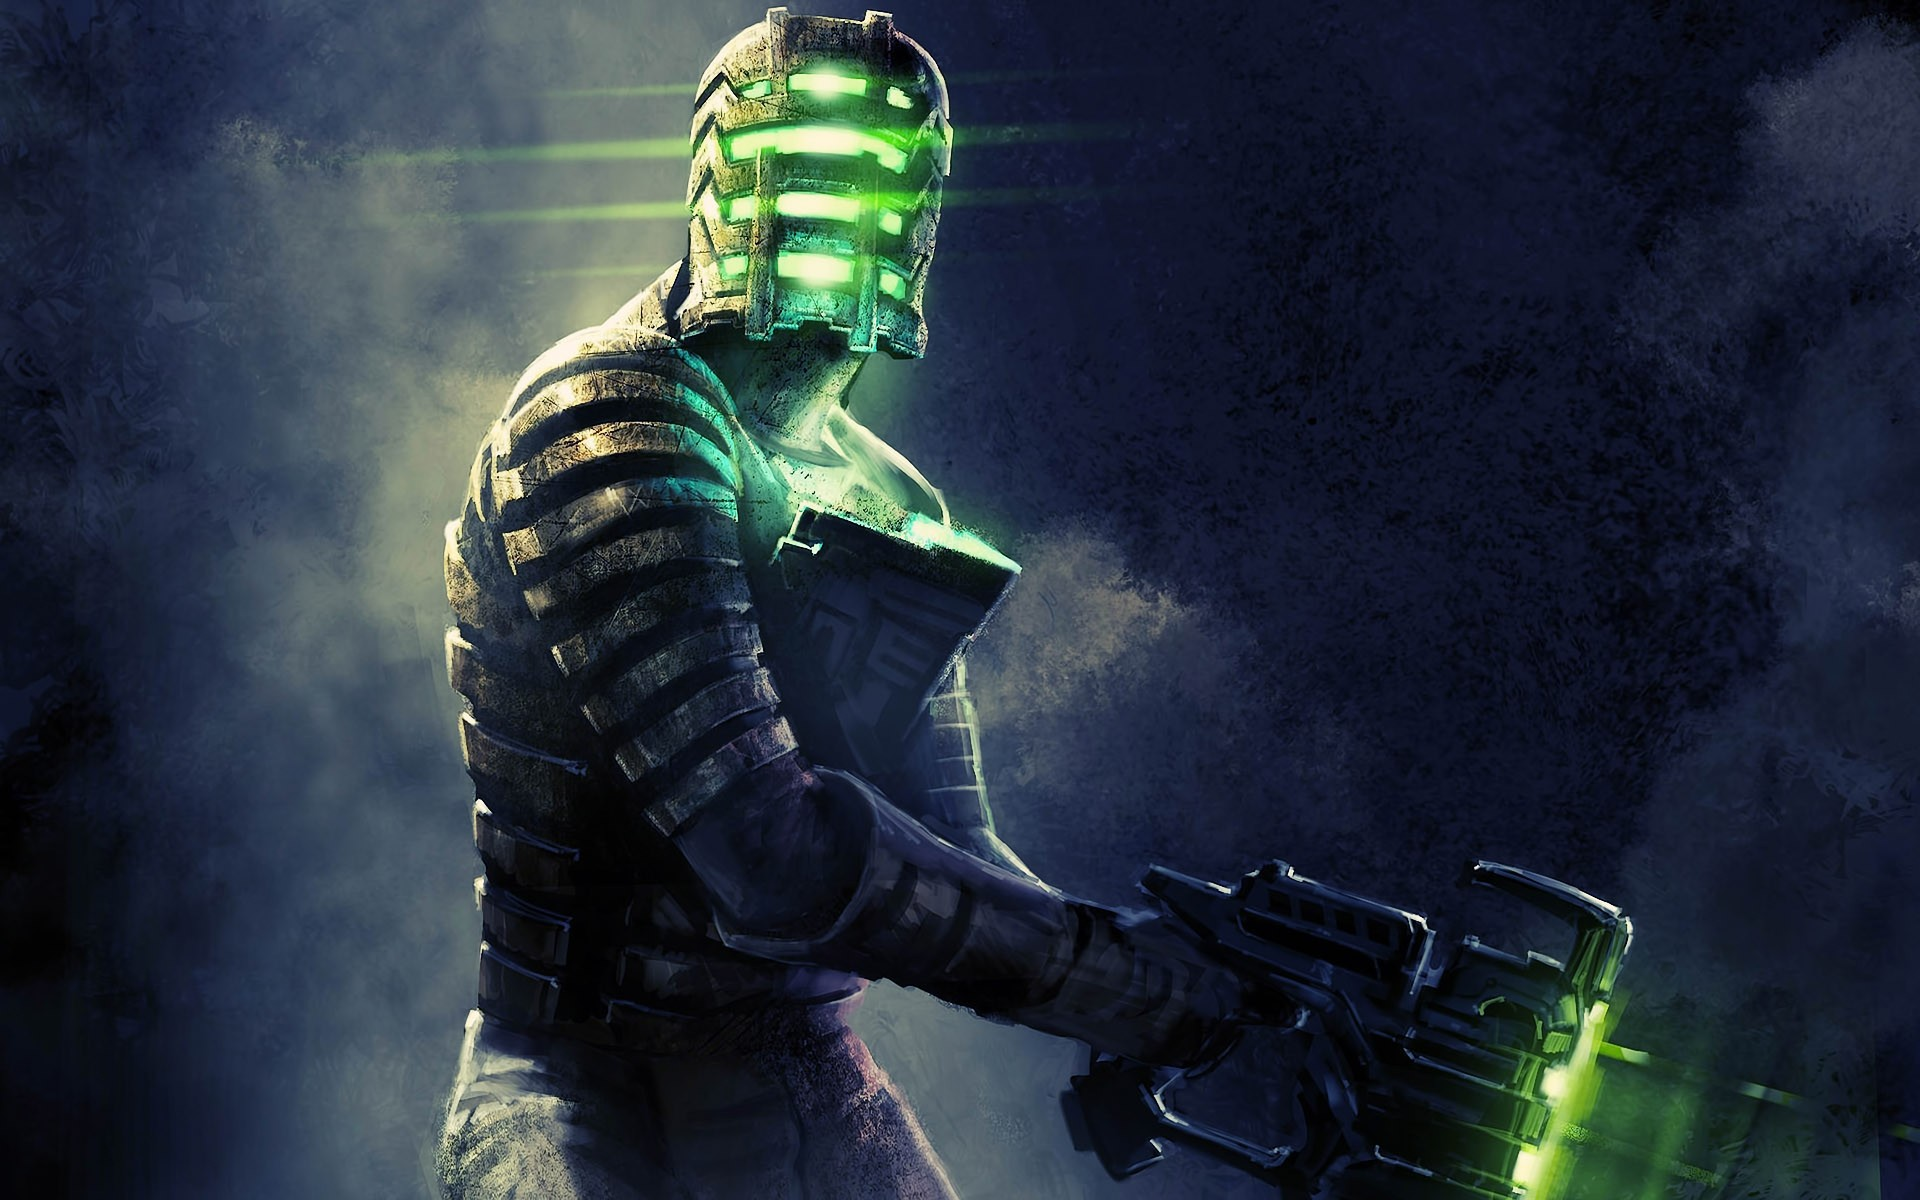 dead-space dead space games video-games sci-fi warriors soldiers weapons guns dark